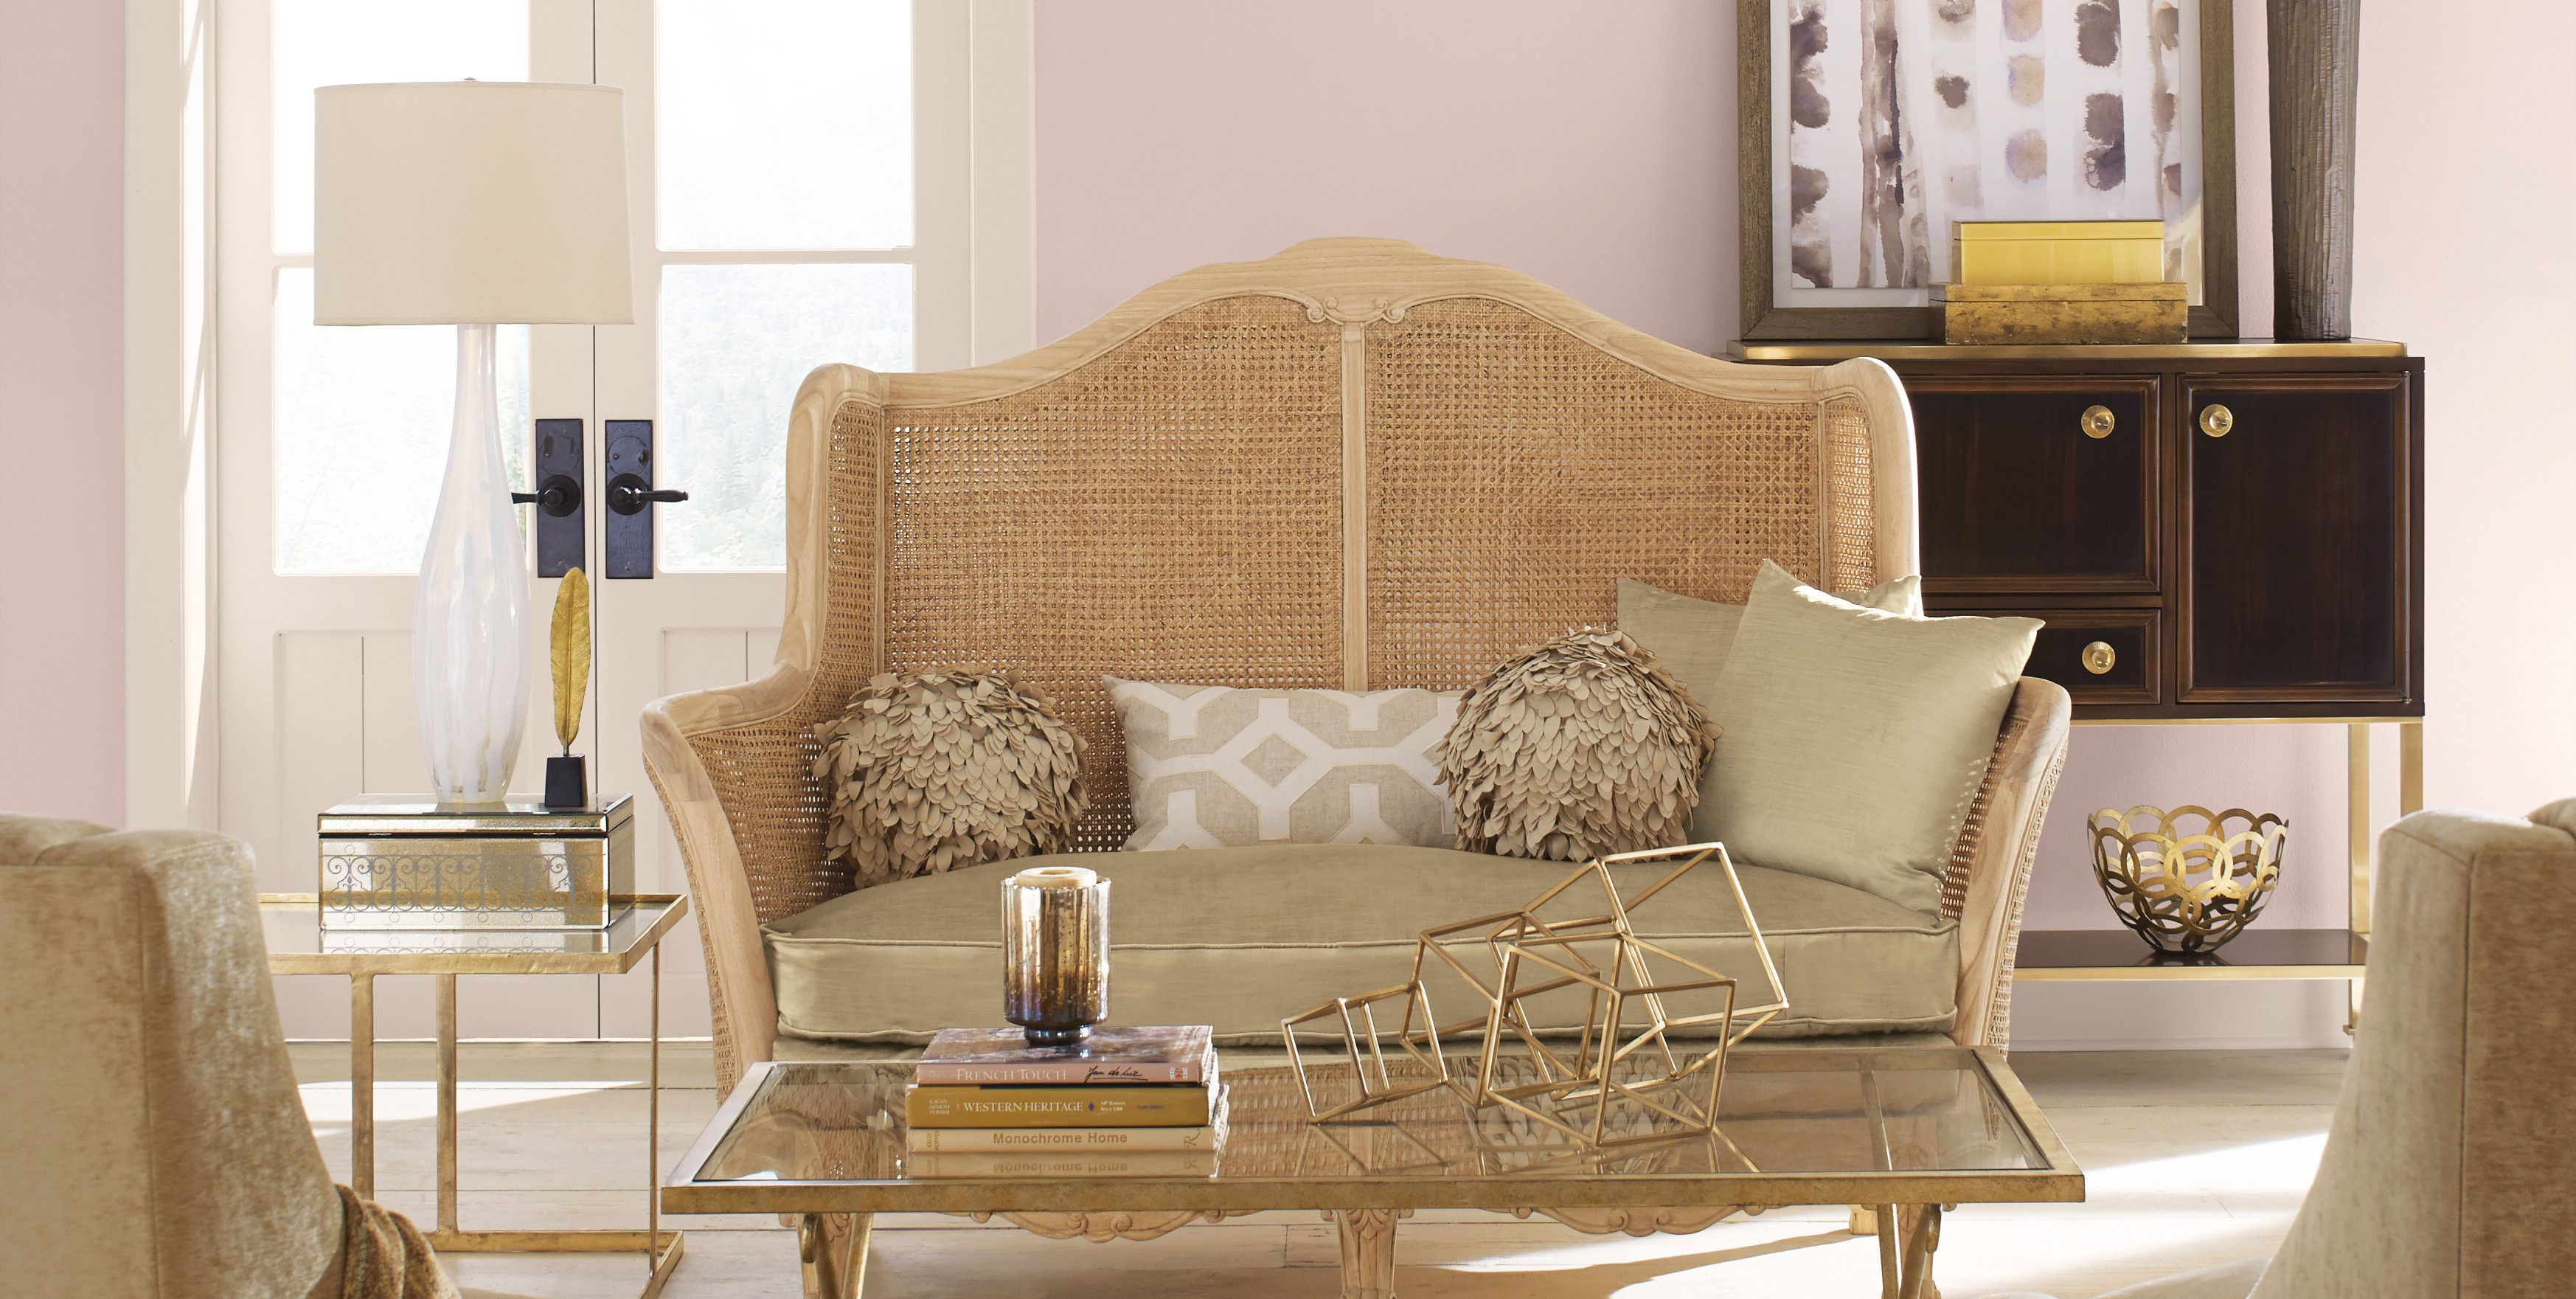 Pink Rooms - Rose Quartz Interiors